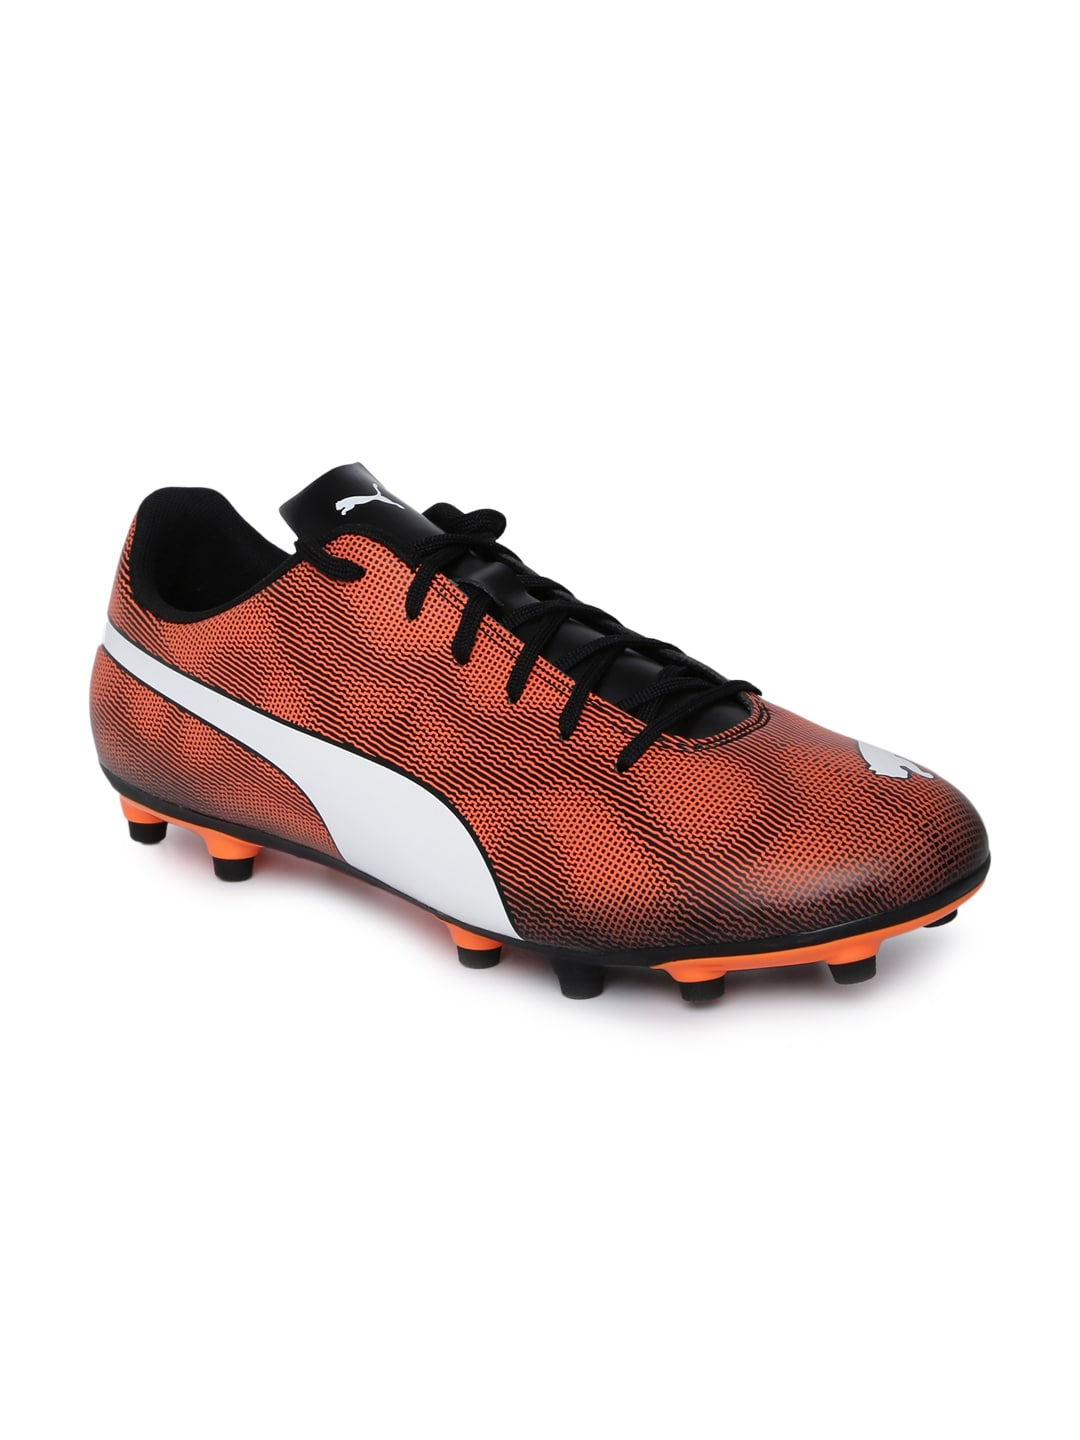 super popular 38440 2b2d6 Football Shoes - Buy Football Studs Online for Men   Women in India